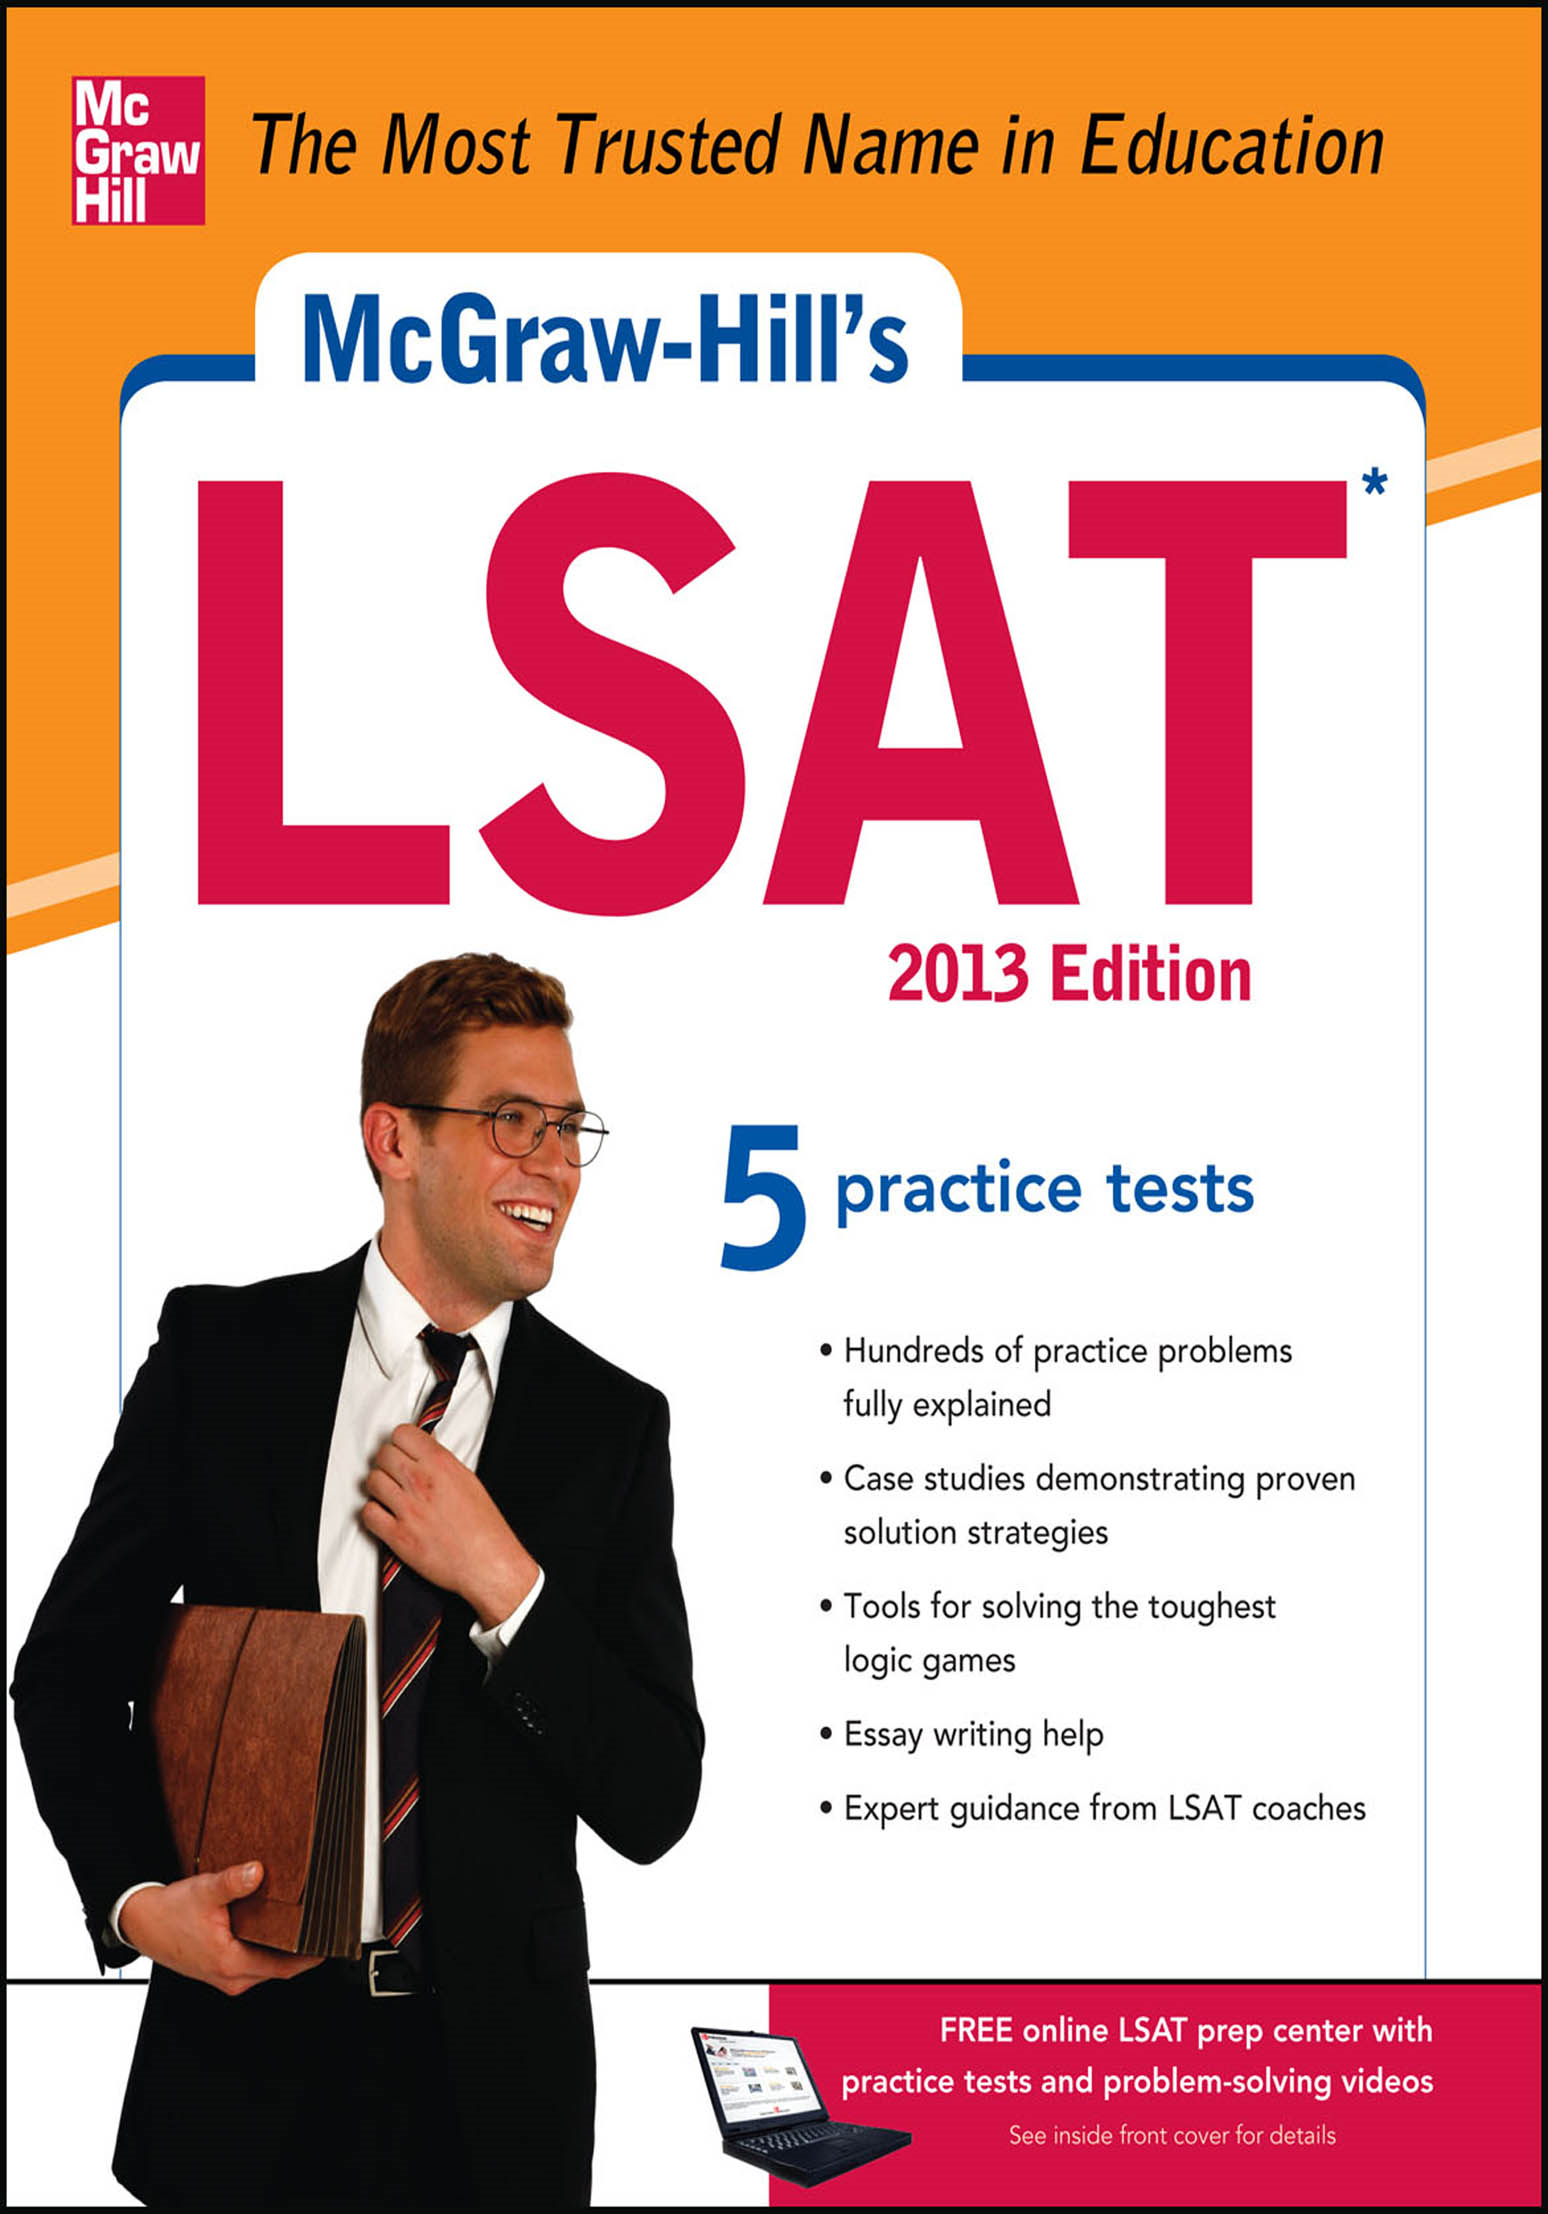 McGraw-Hill's LSAT, 2013 Edition